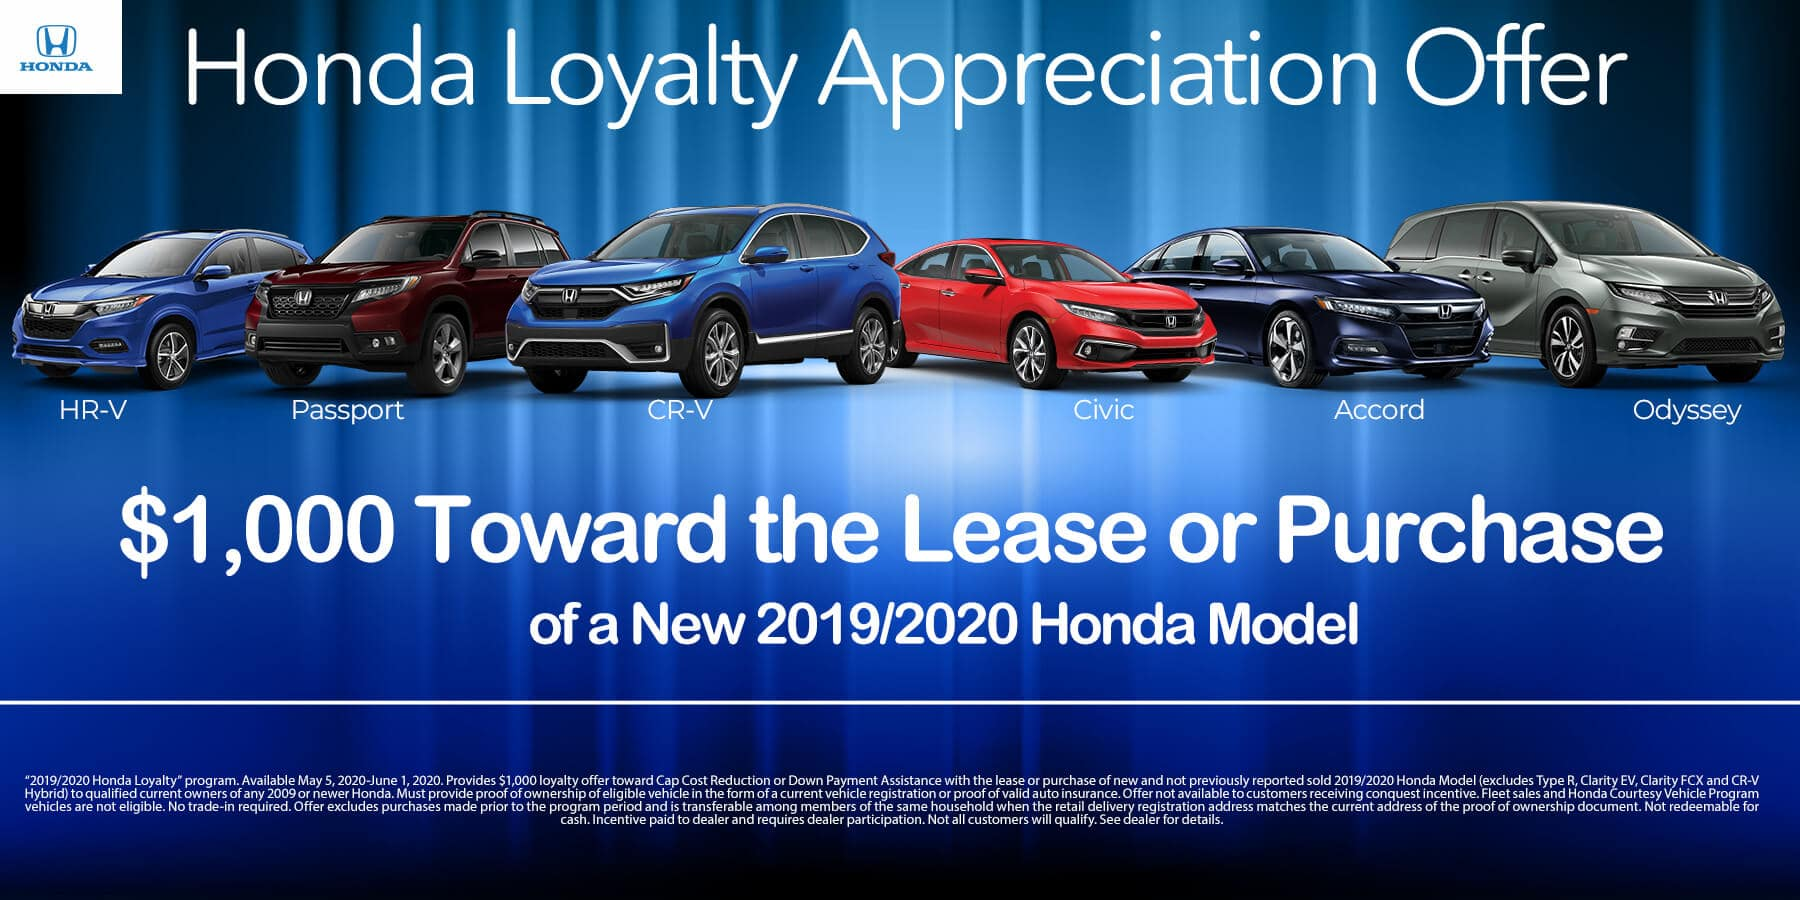 $1,000 Toward the Lease or Purchase of a New Honda